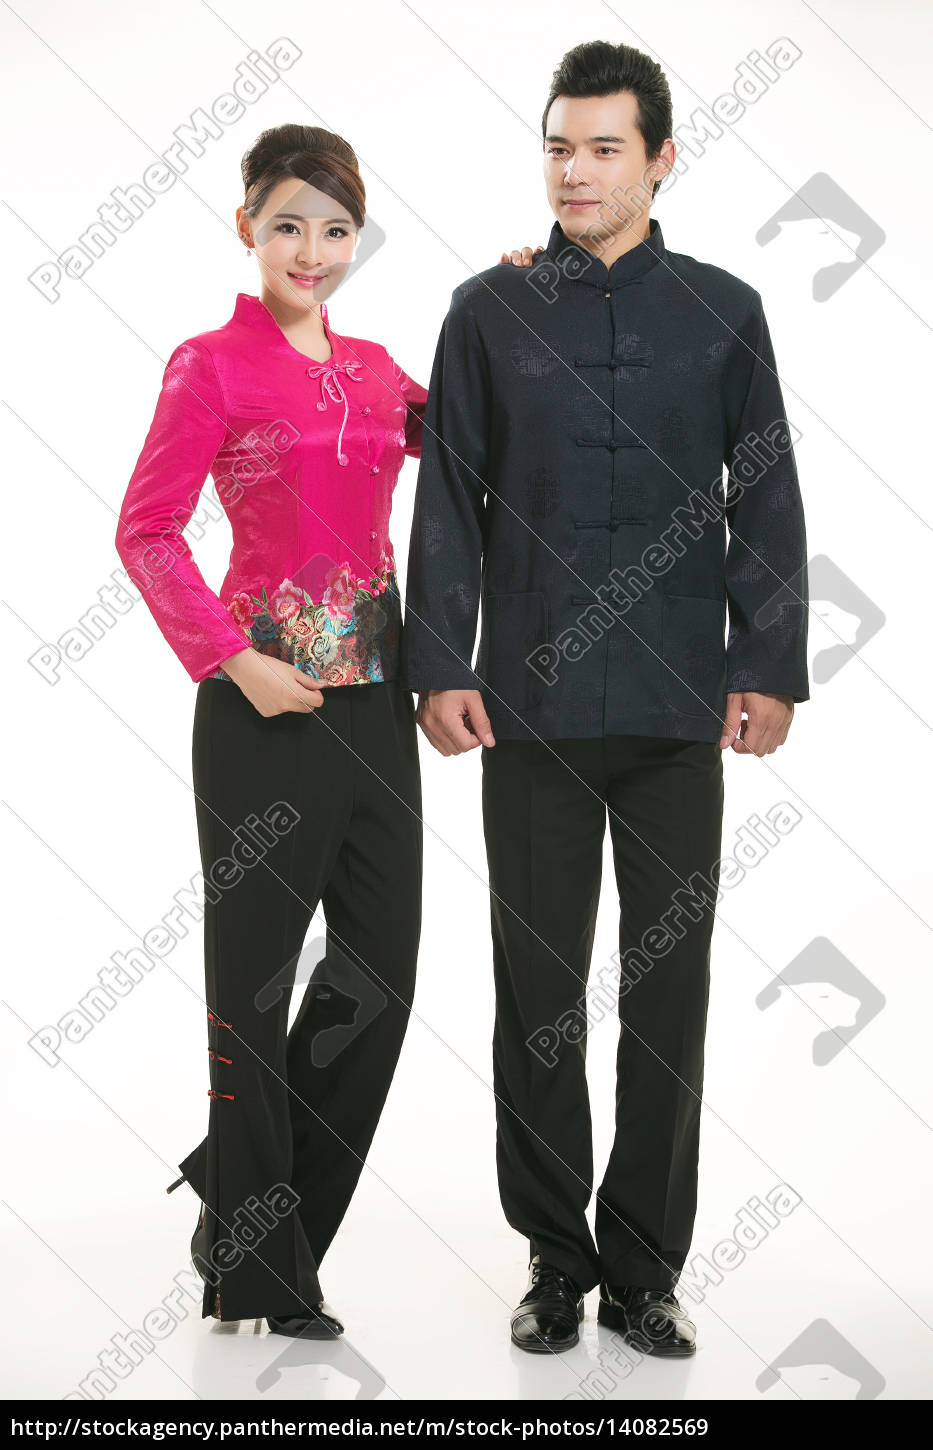 wearing, chinese, clothing, waiter, in, front - 14082569